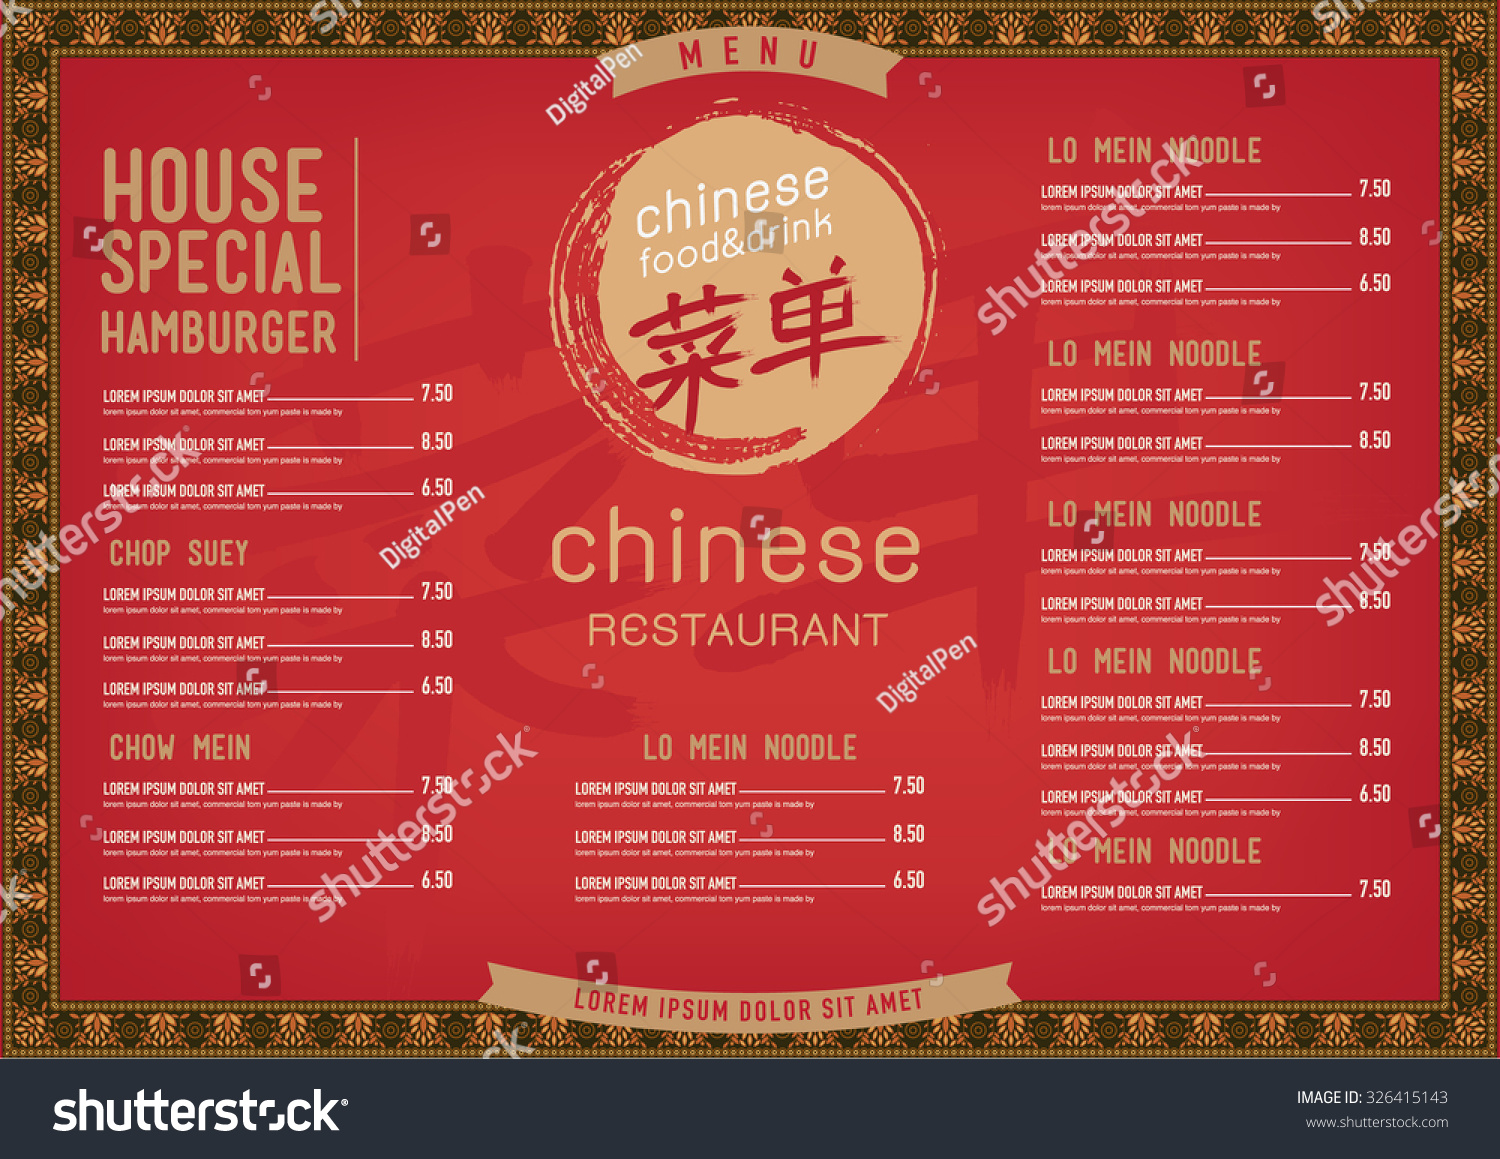 Chinese Cuisine - PowerPoint PPT Presentation